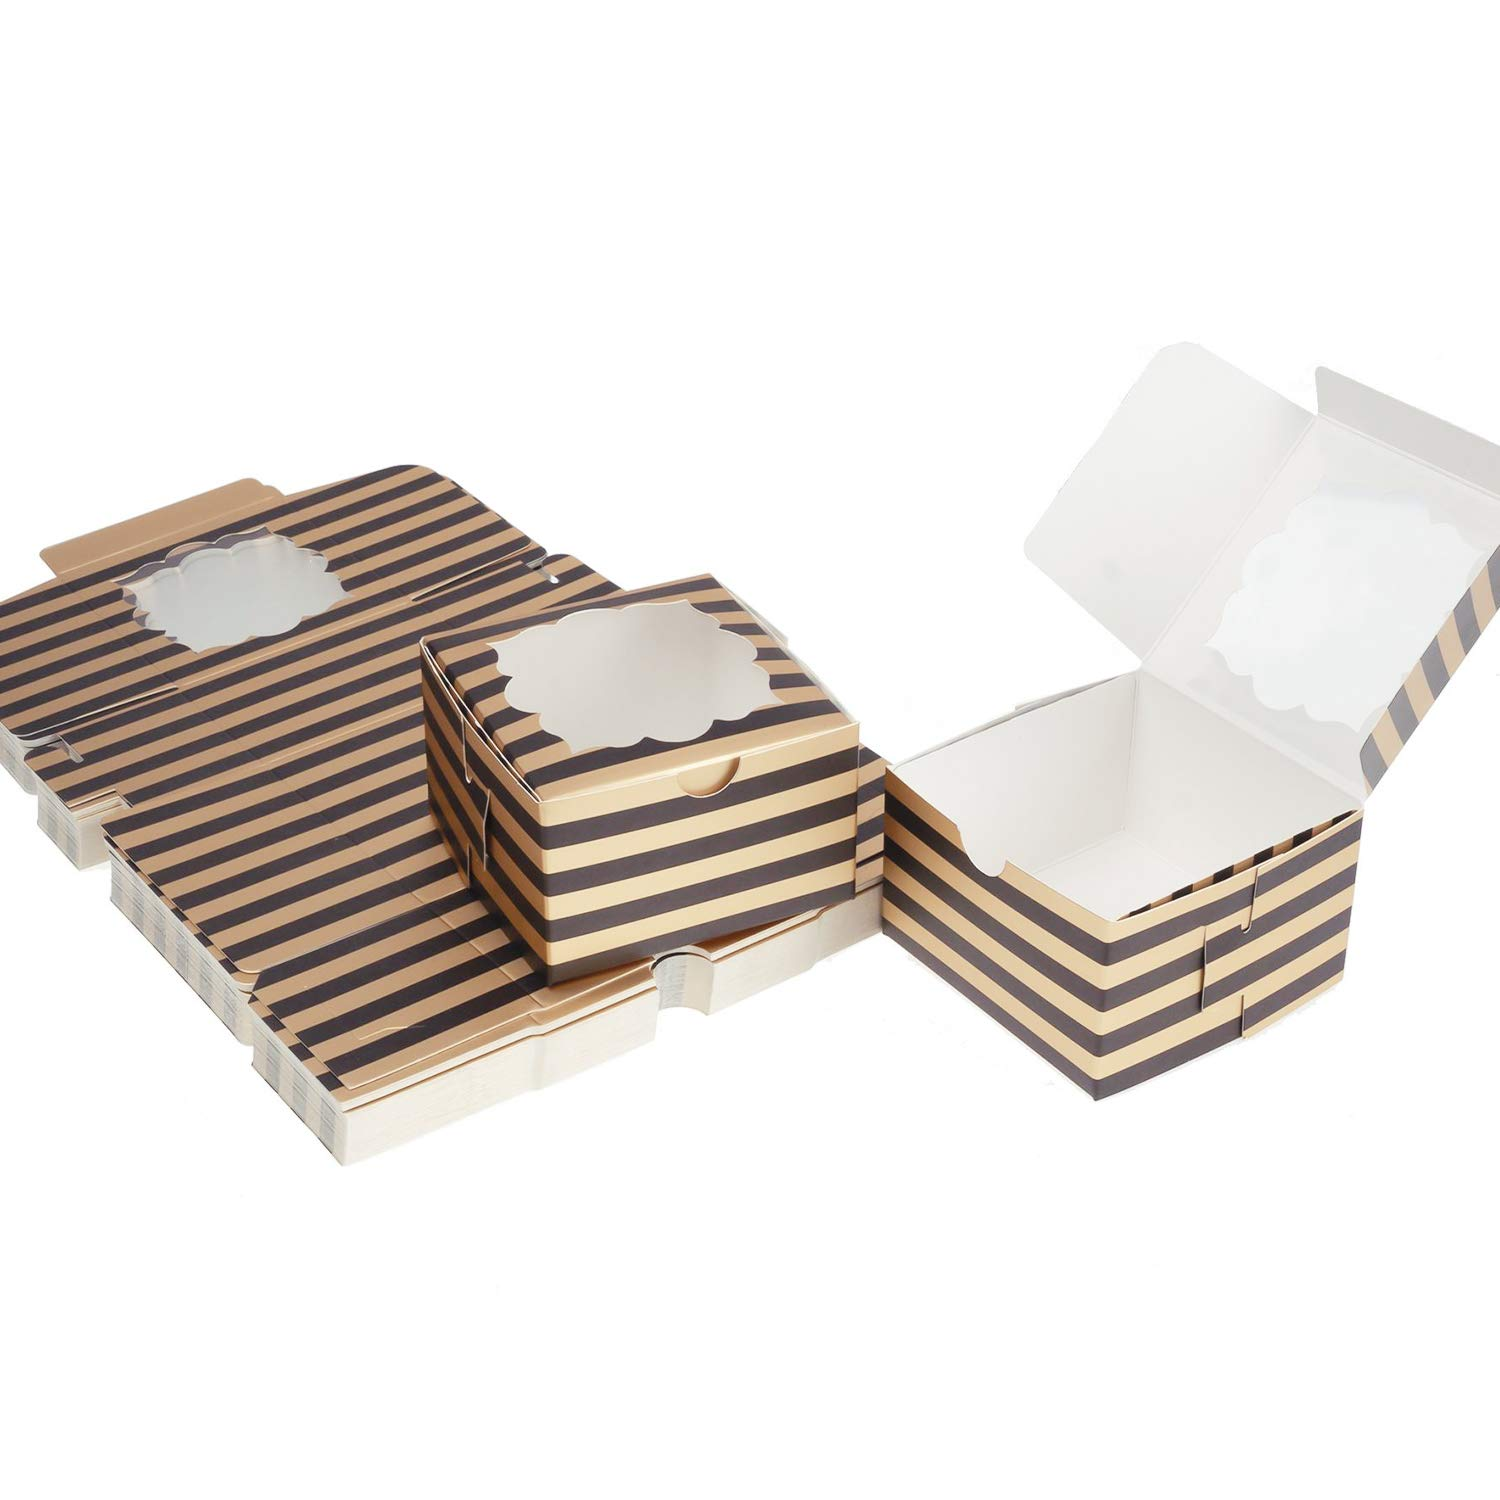 Aekopwera 50 Pack Black Bakery Boxes with Window 4x4x2.5 inches, Pastry Boxes with Gold Stripes Dessert Boxes Treat Boxes for Gift Giving